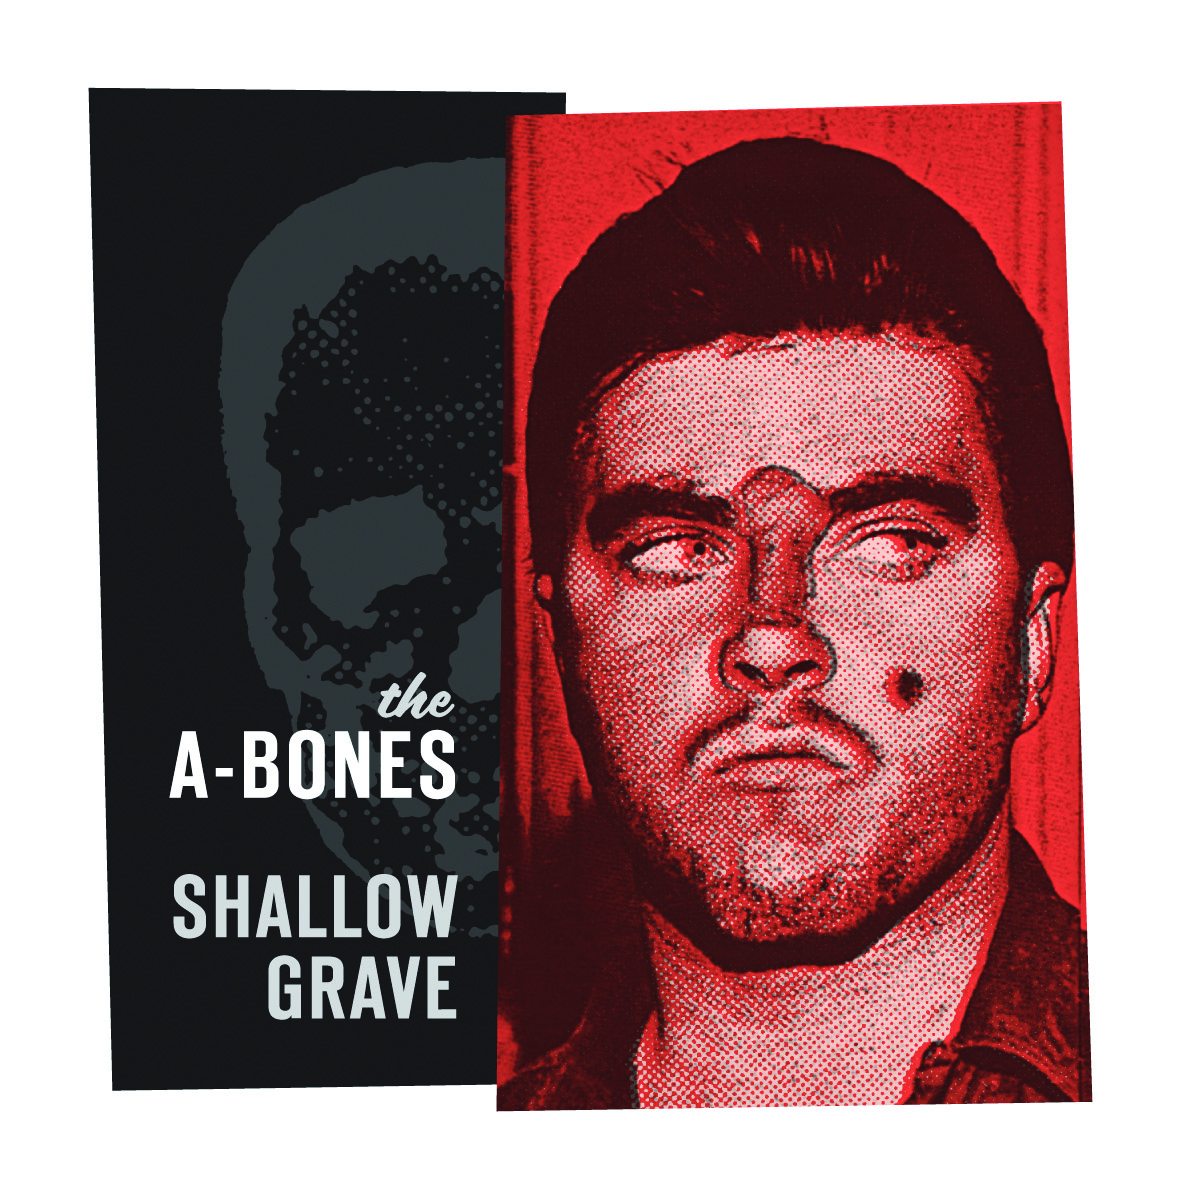 The A-Bones - Shallow Grave 45 sleeve